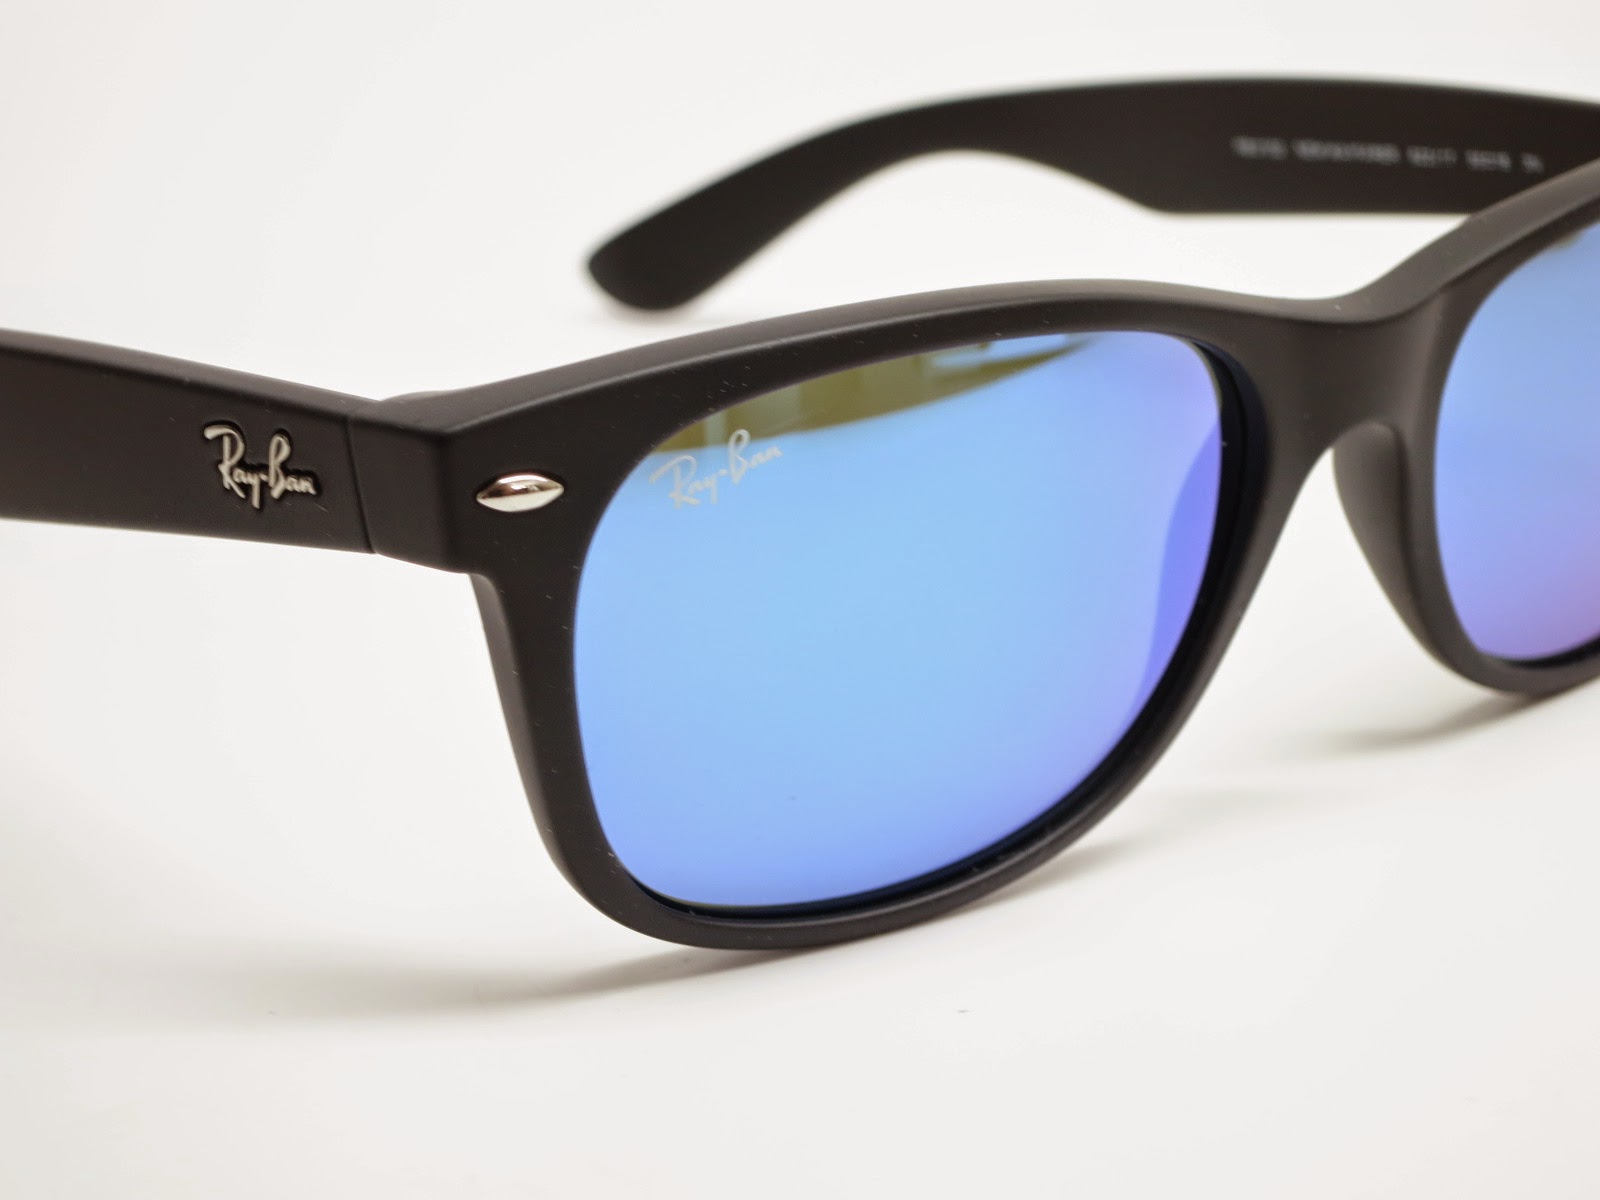 9a5622265c6 Ray Ban Rb8306 082 « One More Soul